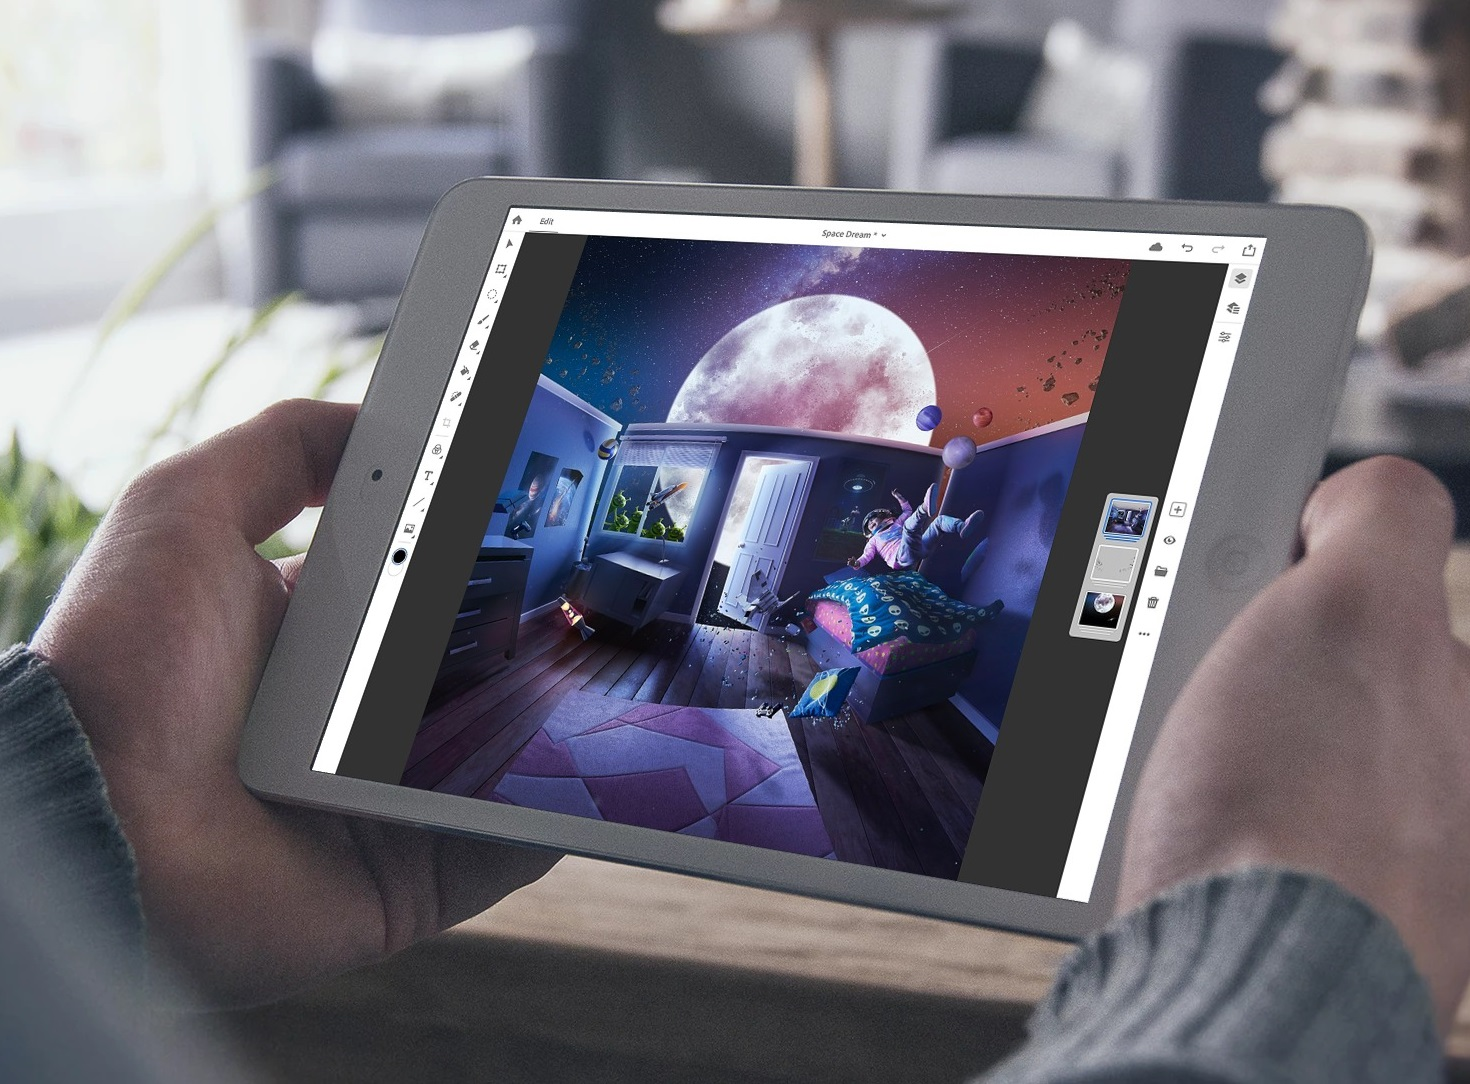 Photoshop CC is (finally) coming to iPad, says Adobe